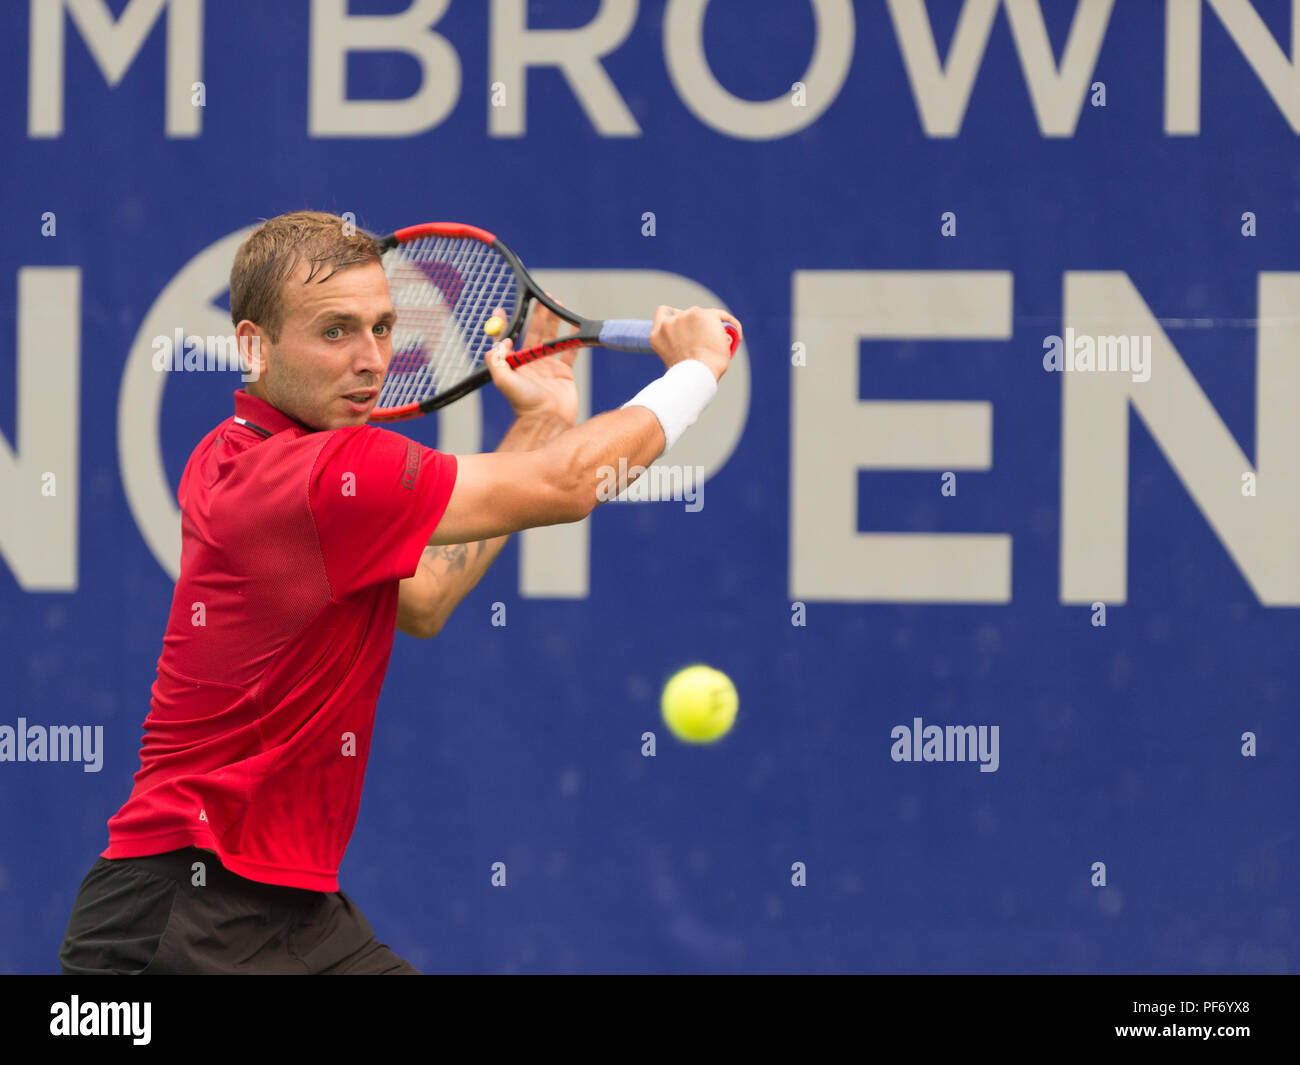 West Vancouver, Canada. 19 August 2018. West Vancouver, Canada. 19 August 2018. Daniel Evans of Great Britain ( shown here) wins the ATP Challenger Tour Mens Singles Final, against Jason Kubler of Australia. Odlum Brown VanOpen. Hollyburn Country Club.  © Gerry Rousseau/Alamy Live News - Stock Image